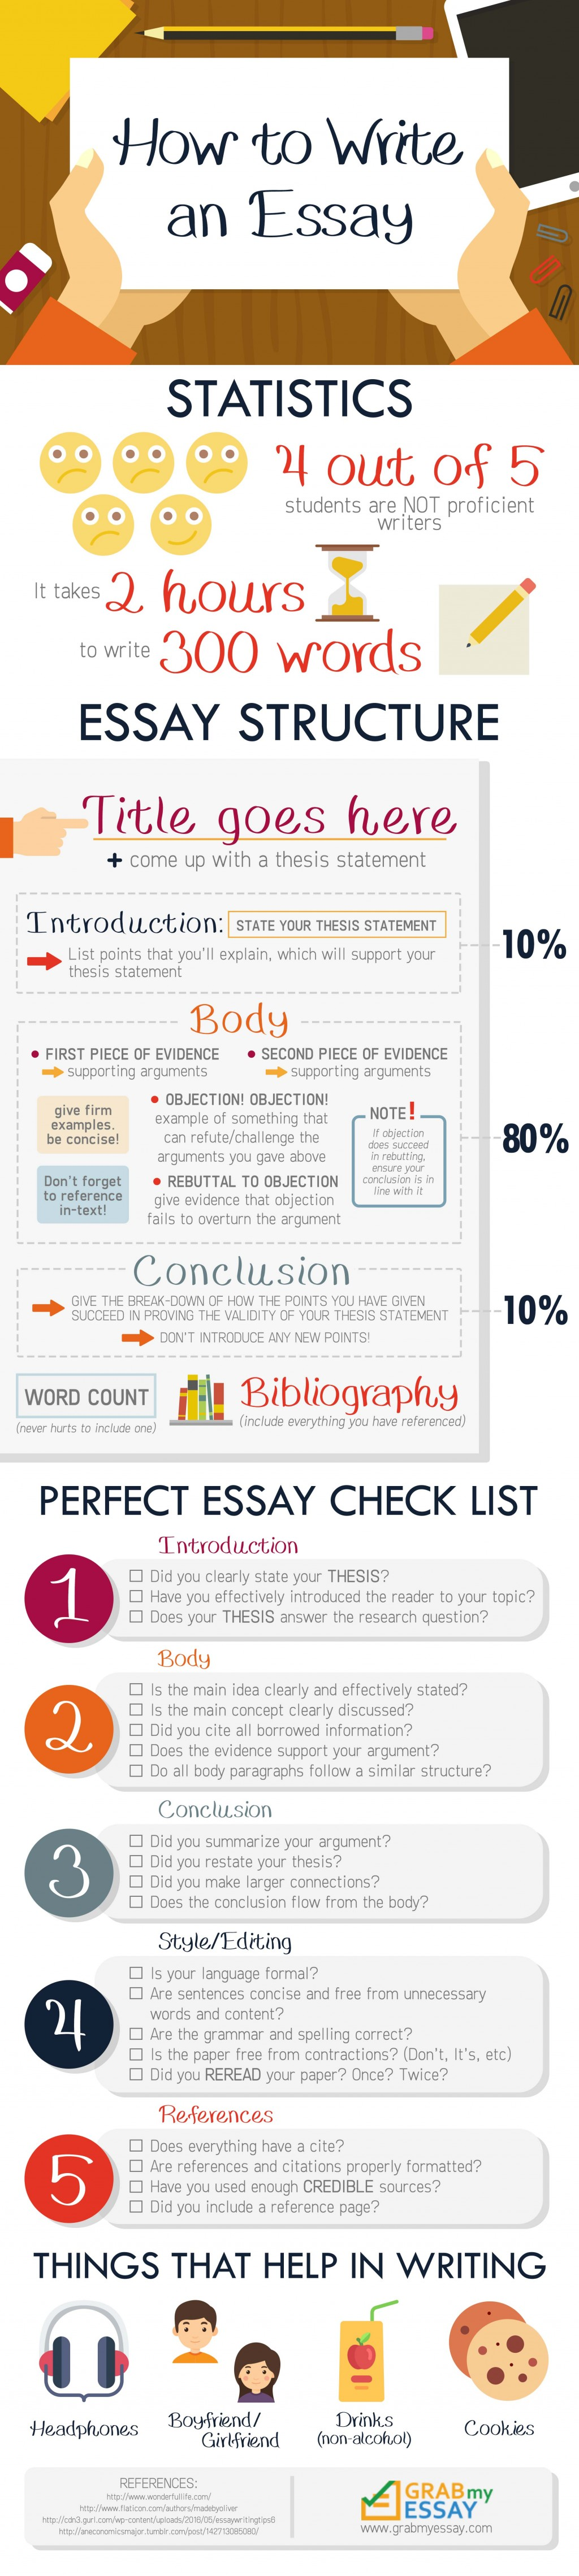 016 Grab My Essay Example Writing Surprising Review Discount Codes Large